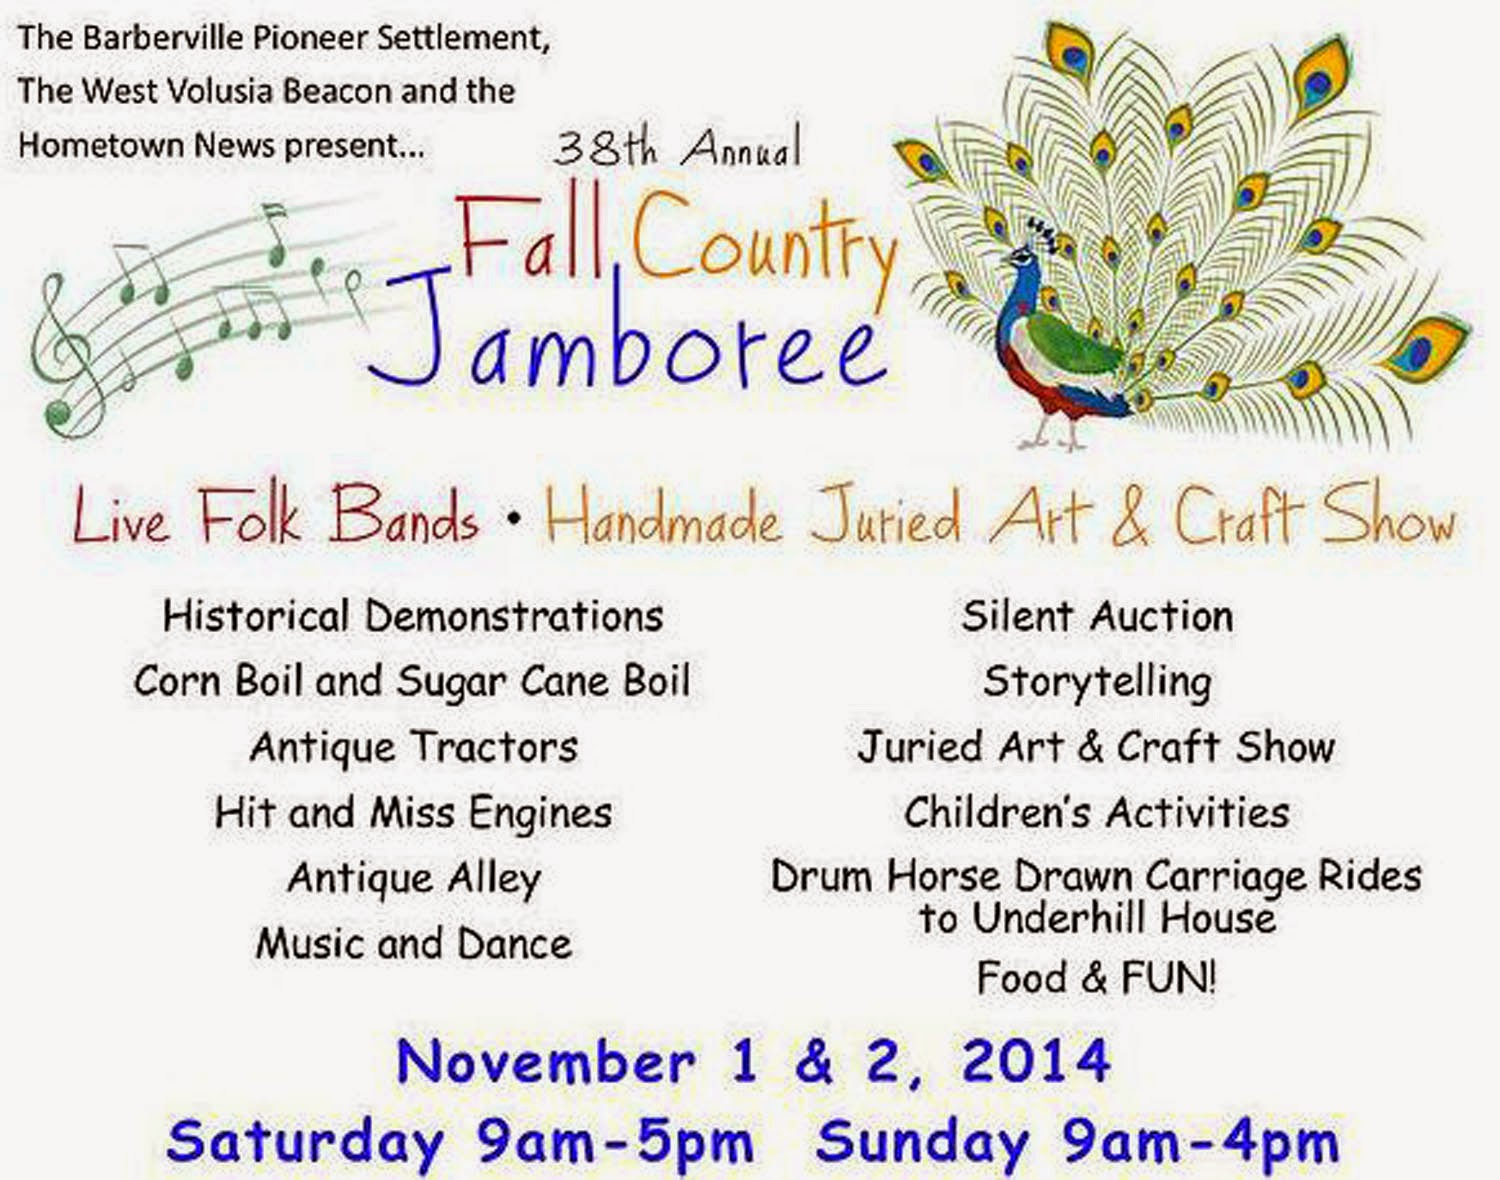 http://www.pioneersettlement.org/#!38th-Fall-Country-Jamboree/c1zty/C53D0797-73E7-4E3C-8338-2DF6A89A2F7A